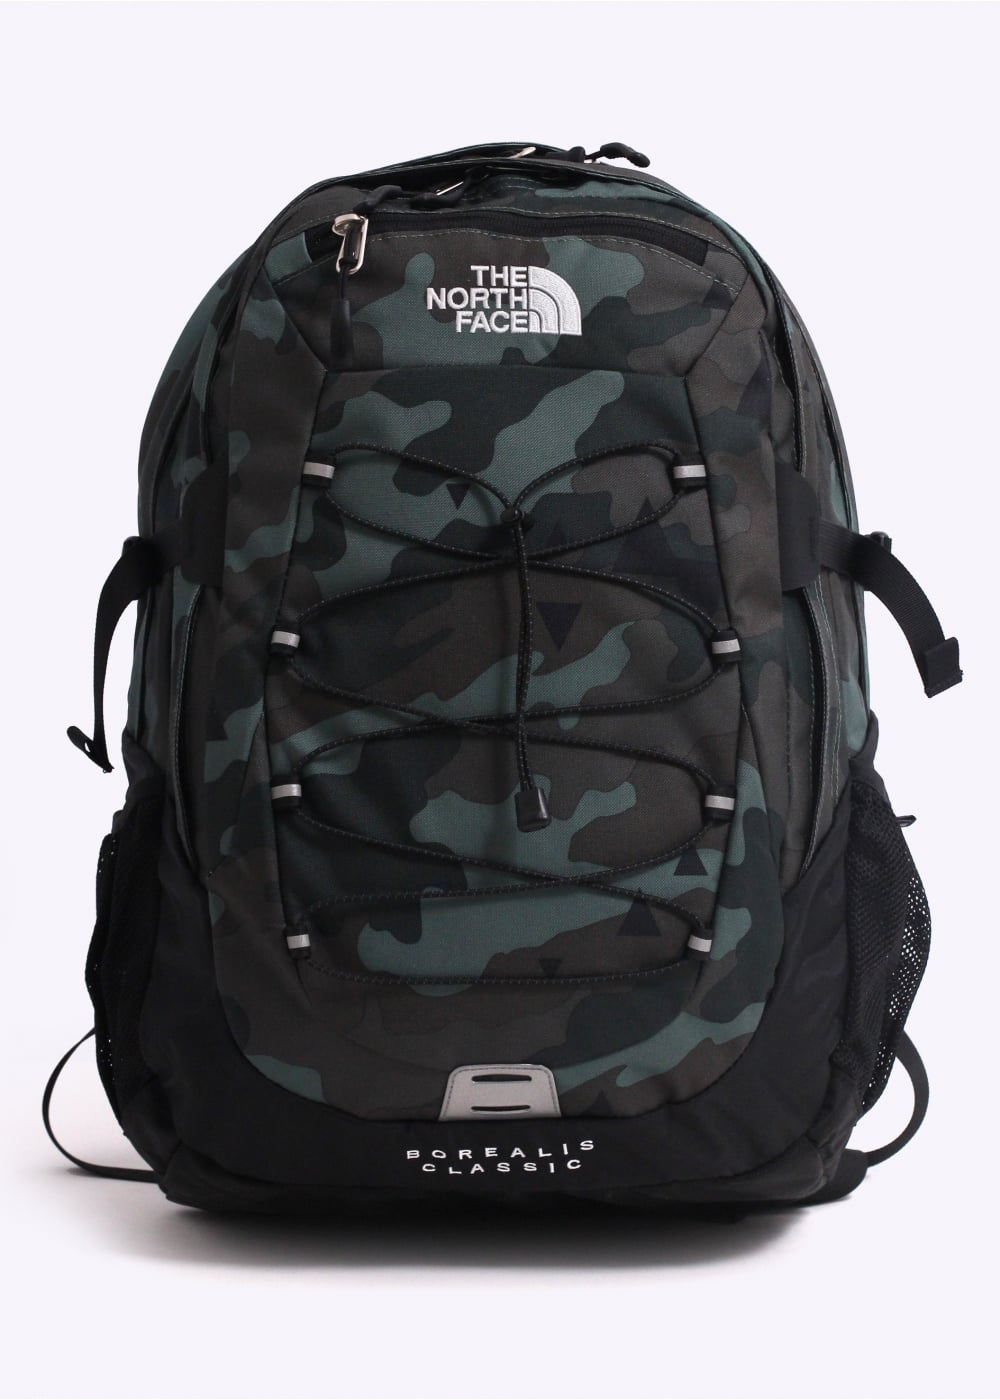 The North Face Borealis Classic Backpack Camo Bags